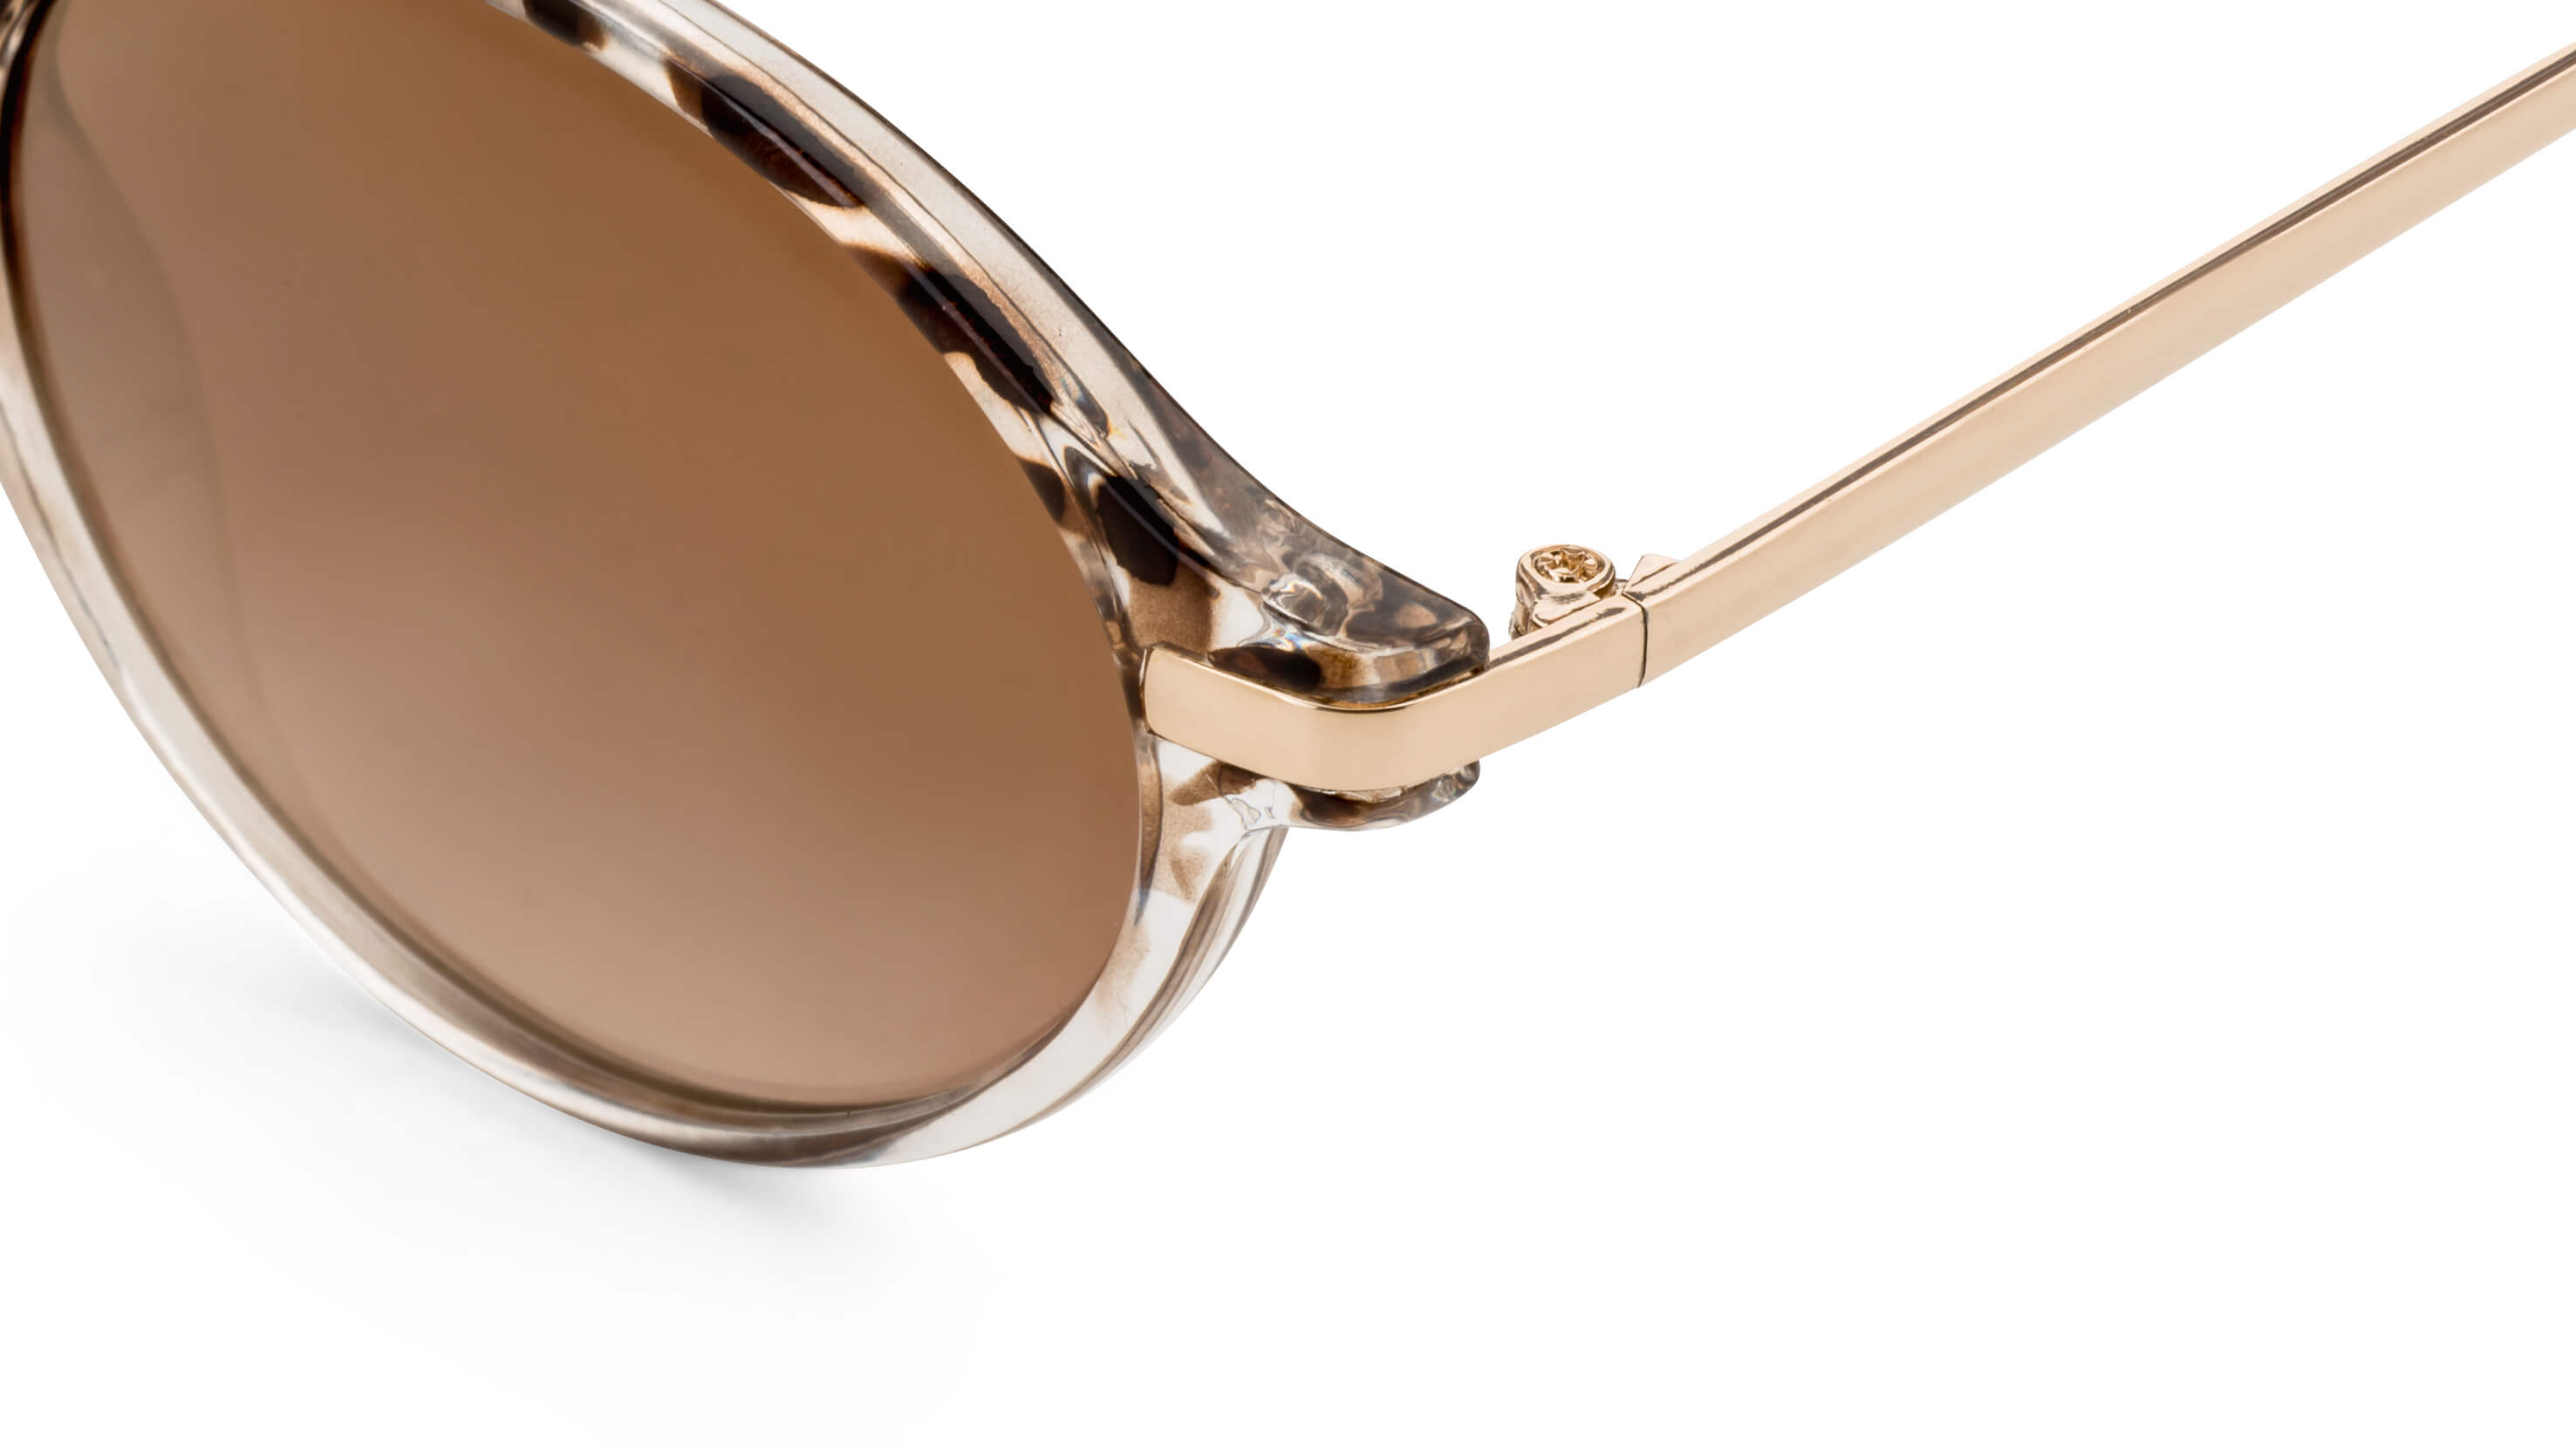 Detailed view sunglasses F3001030